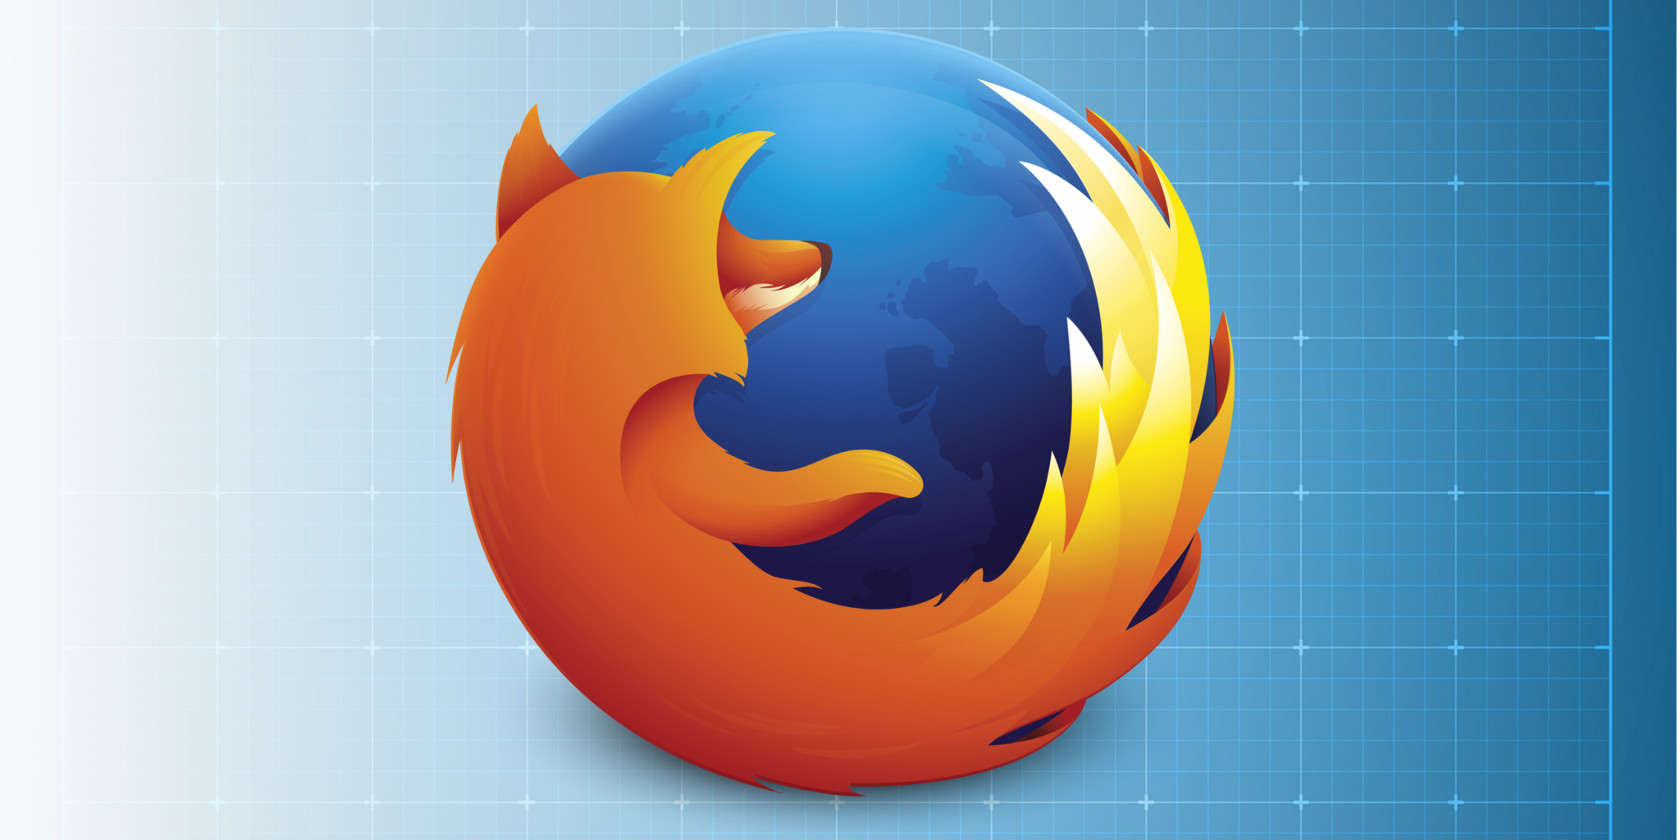 Close-up of Firefox logo